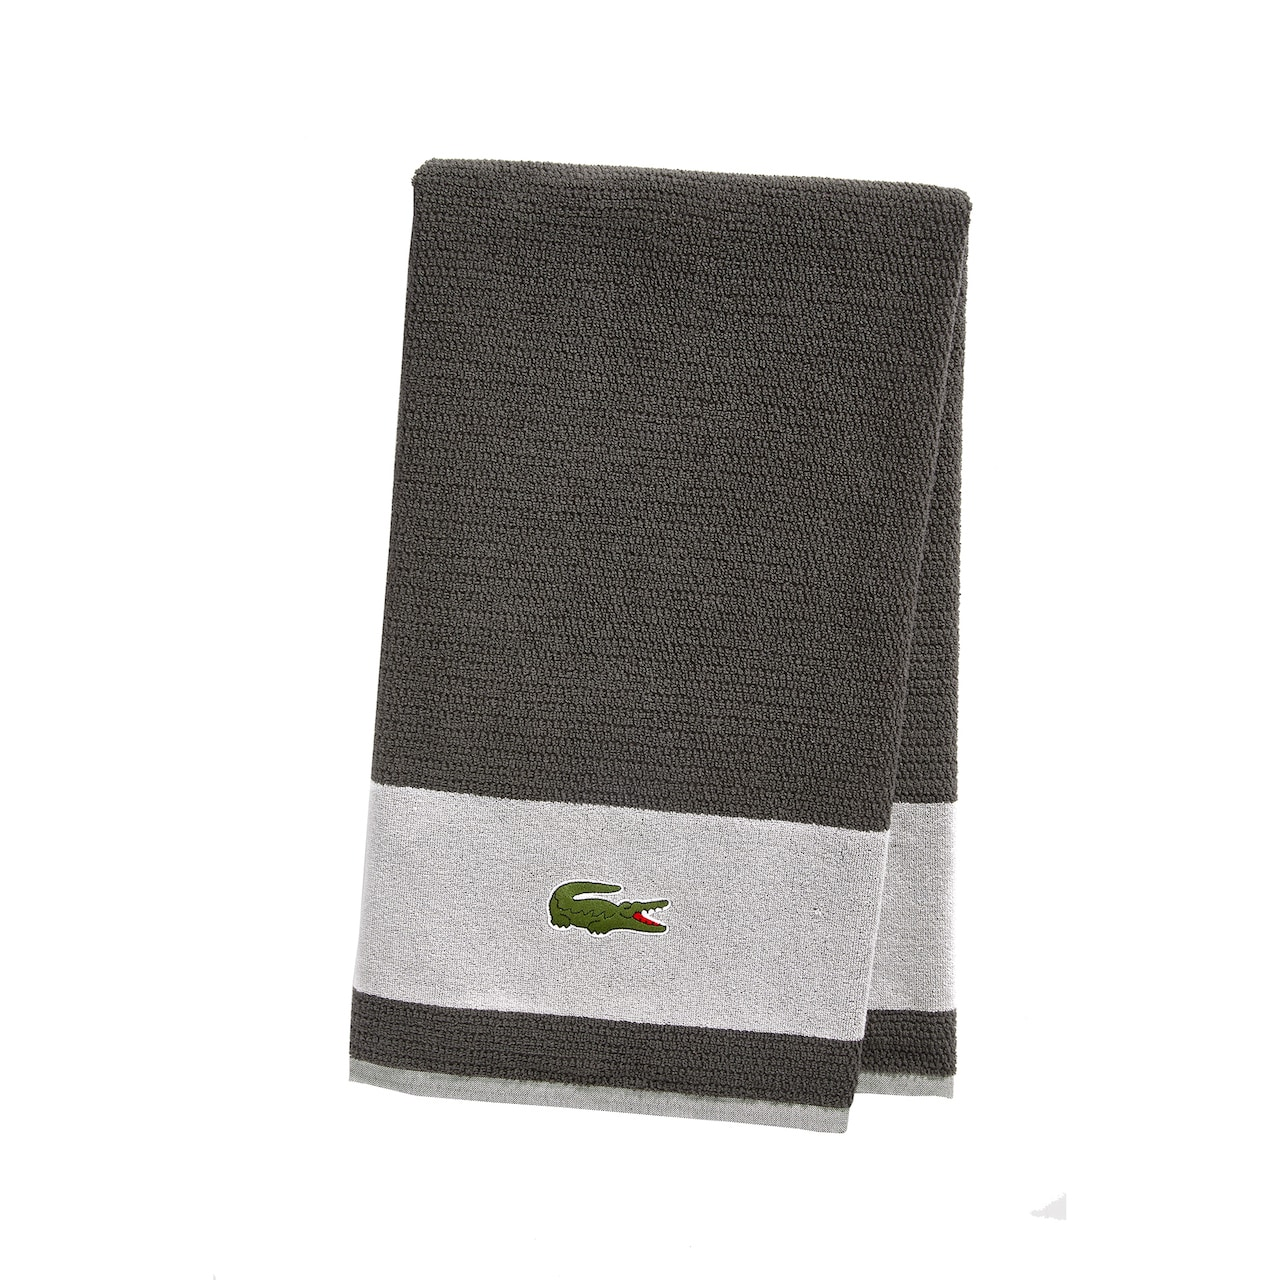 Match Towel